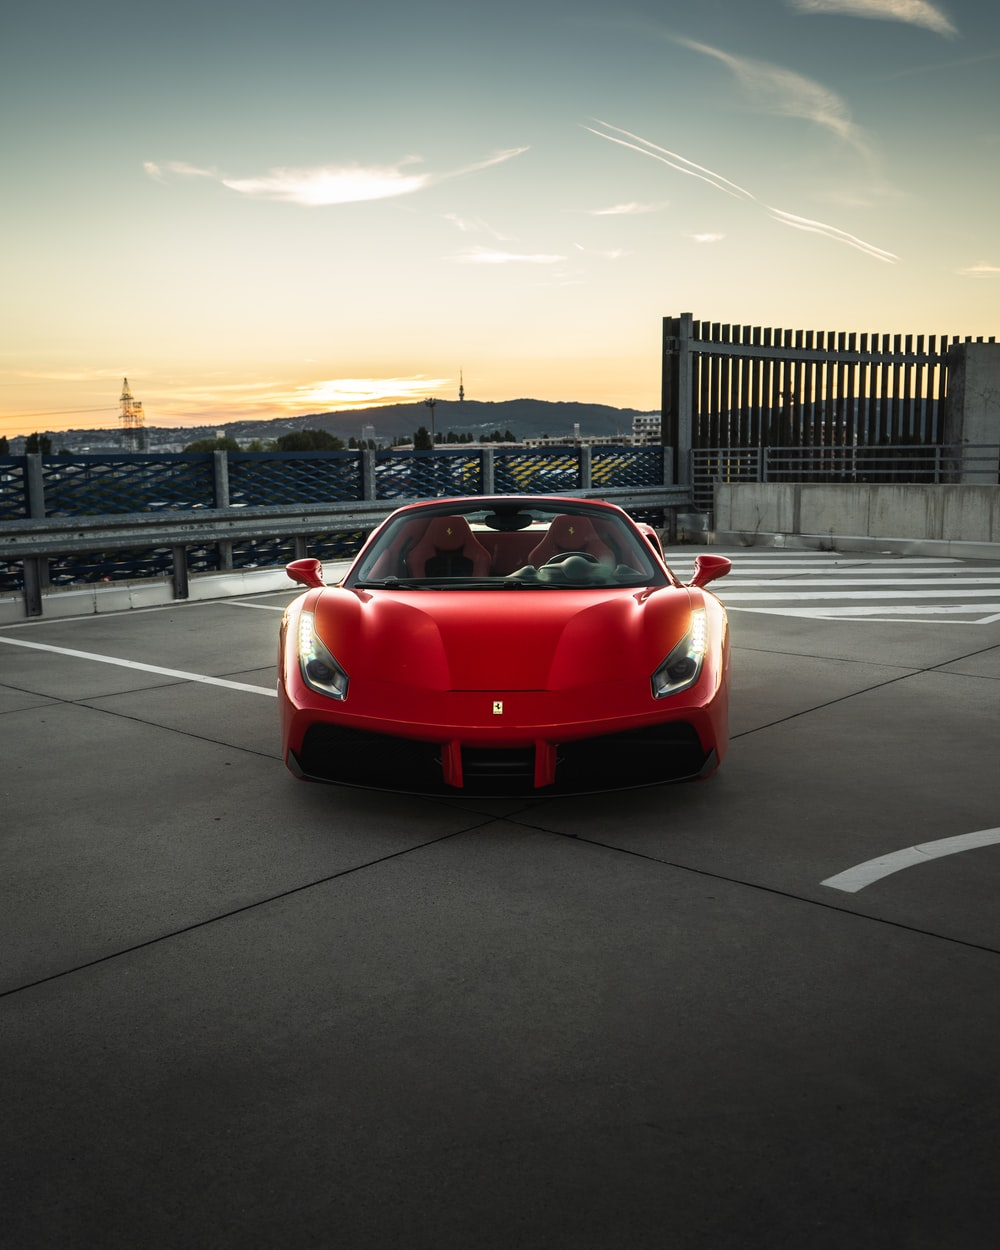 red ferrari sports car on road during daytime